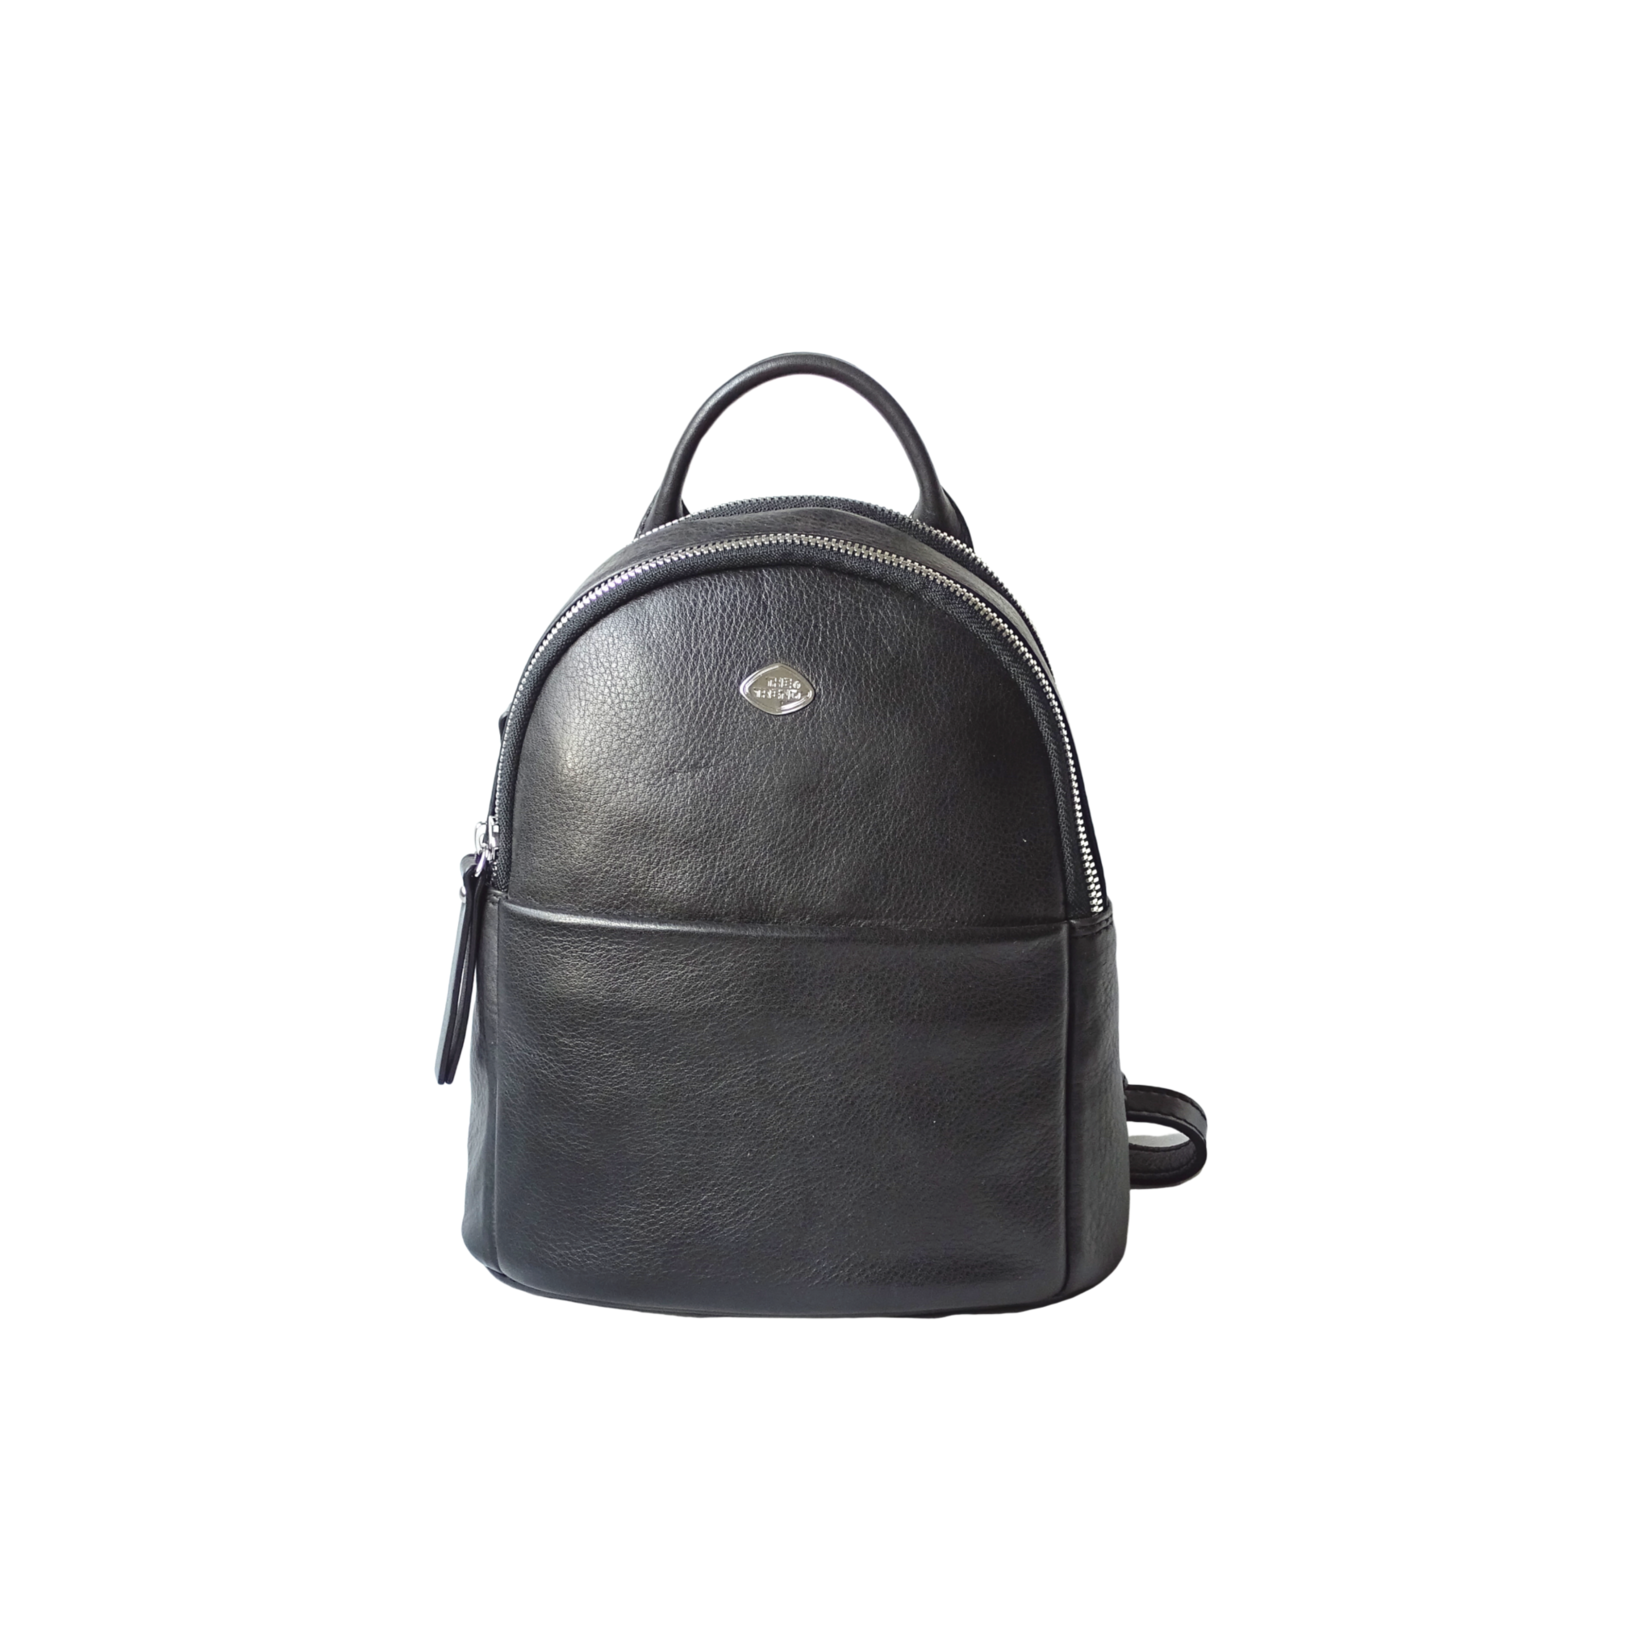 The Trend The Trend 584534 black backpack